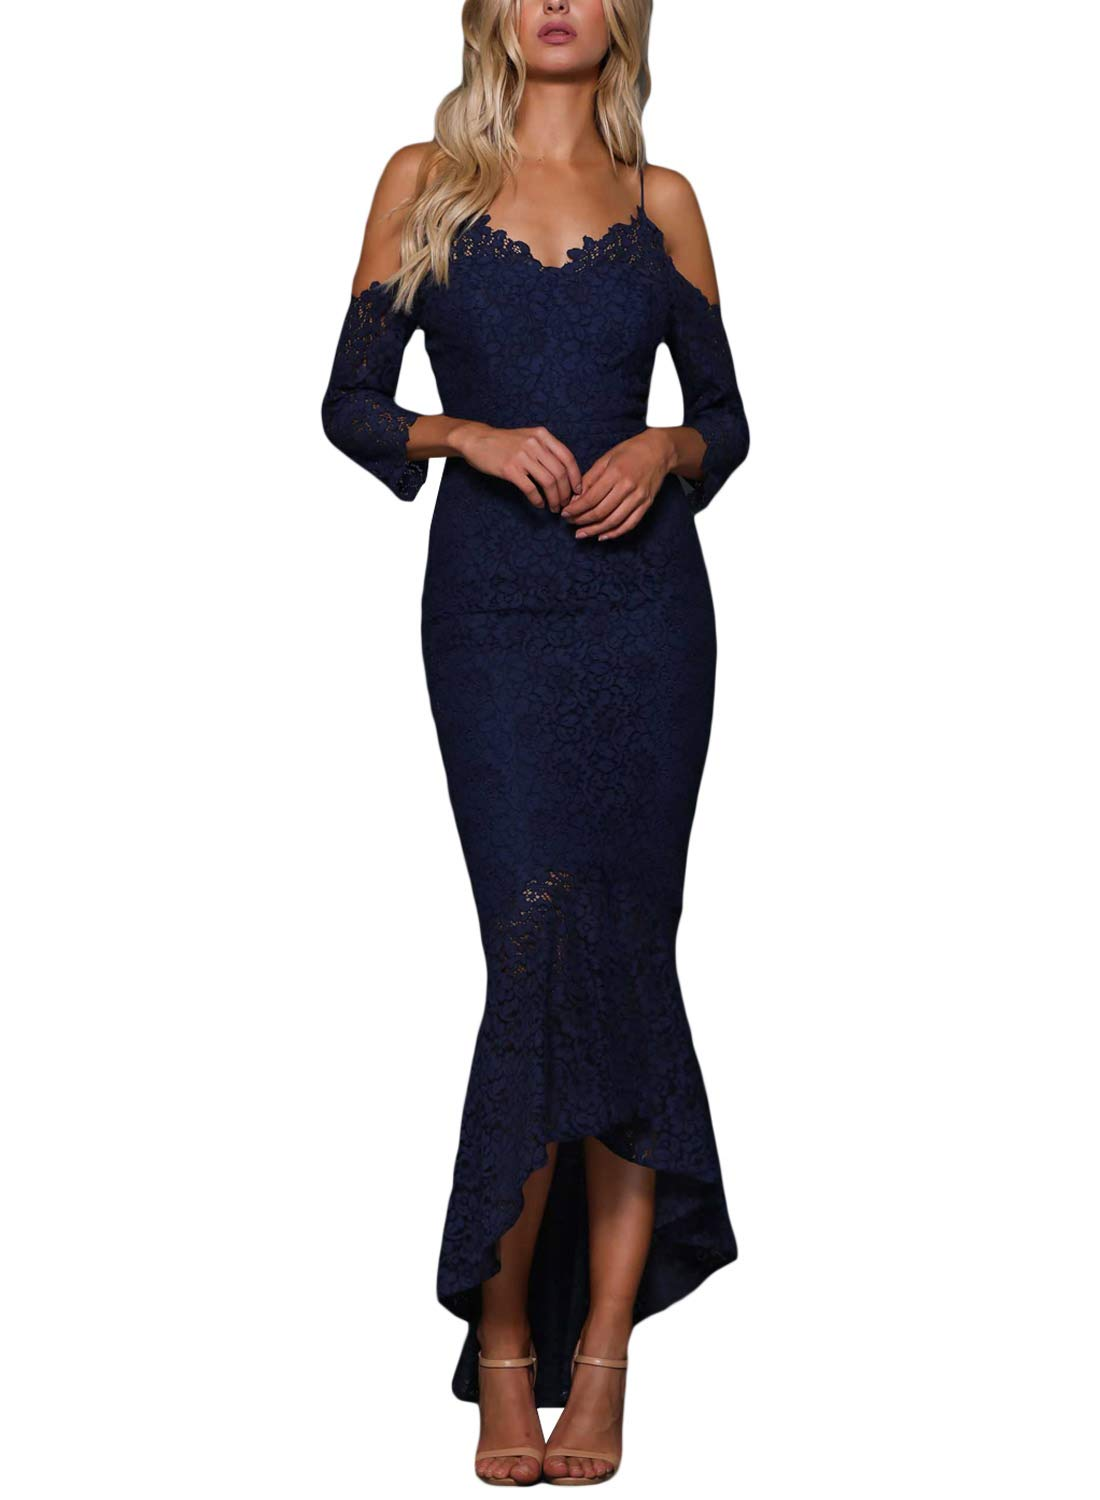 ROSKIKI Womens High Low Bodycon Mermaid Spaghetti Straps Sexy Cocktail Evening Dresses 3/4 Sleeve Bare Shoulder Formal Homecoming Dresses Navy Blue S